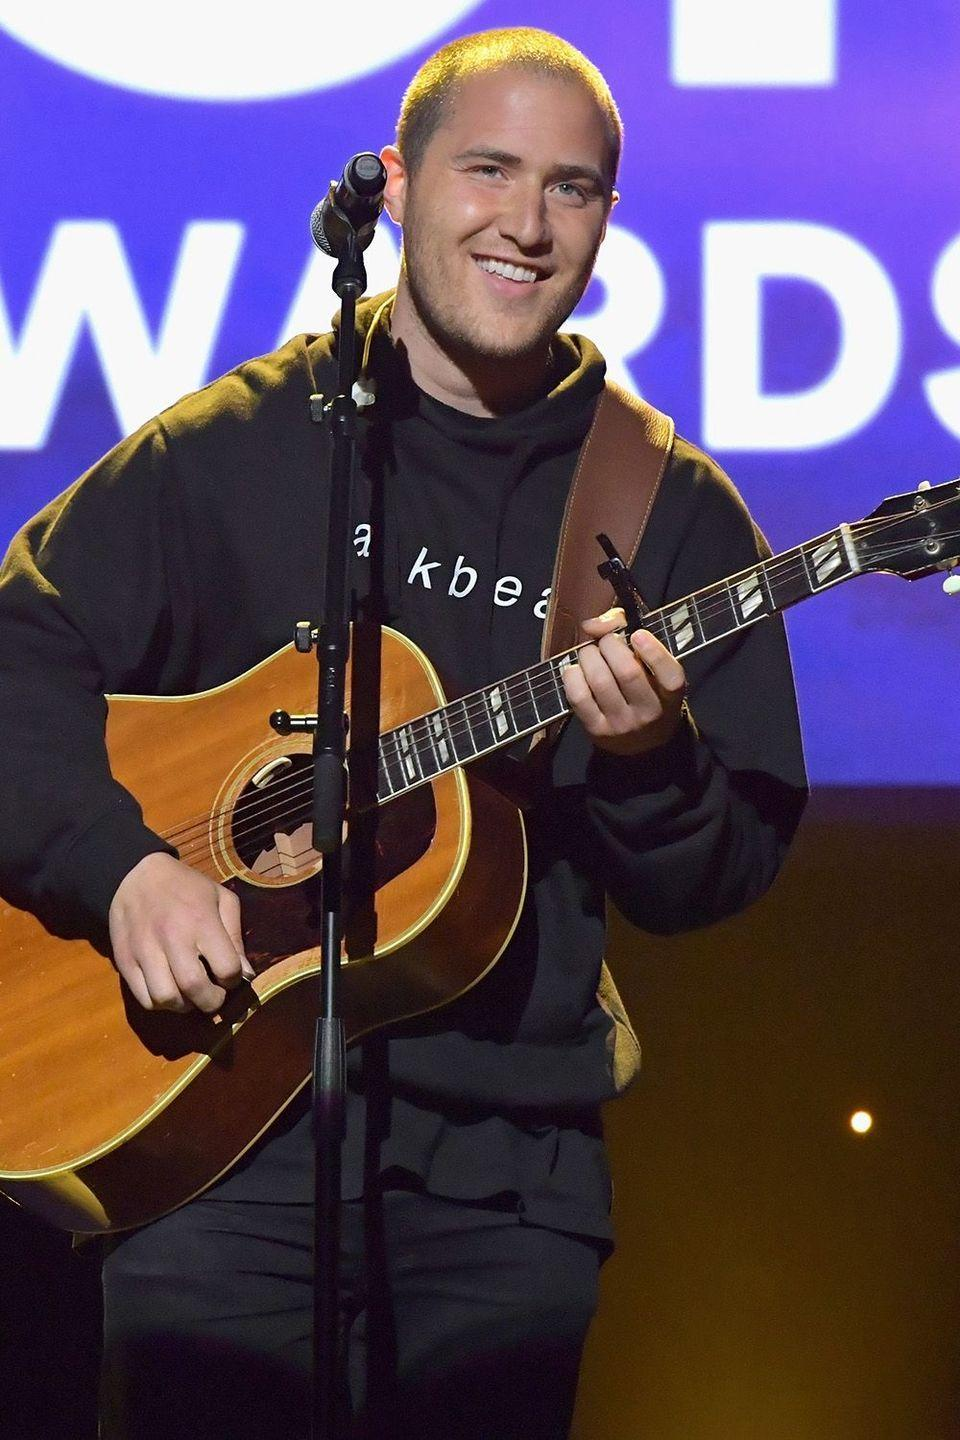 """<p>The singer publicly announced why he stopped drinking alcohol in a <a href=""""https://twitter.com/mikeposner/status/623507784752099328?lang=en"""" rel=""""nofollow noopener"""" target=""""_blank"""" data-ylk=""""slk:tweet"""" class=""""link rapid-noclick-resp"""">tweet</a> back in 2015 that was linked to a <a href=""""https://medium.com/@MikePosner/why-i-stopped-drinking-alcohol-fc3581913ae5"""" rel=""""nofollow noopener"""" target=""""_blank"""" data-ylk=""""slk:tell-all"""" class=""""link rapid-noclick-resp"""">tell-all</a> article on the subject. Posner explains his messy pattern of addition throughout the excerpt, noting """"I decided I couldn't let alcohol rob me of enjoying my life's special moments.""""</p>"""